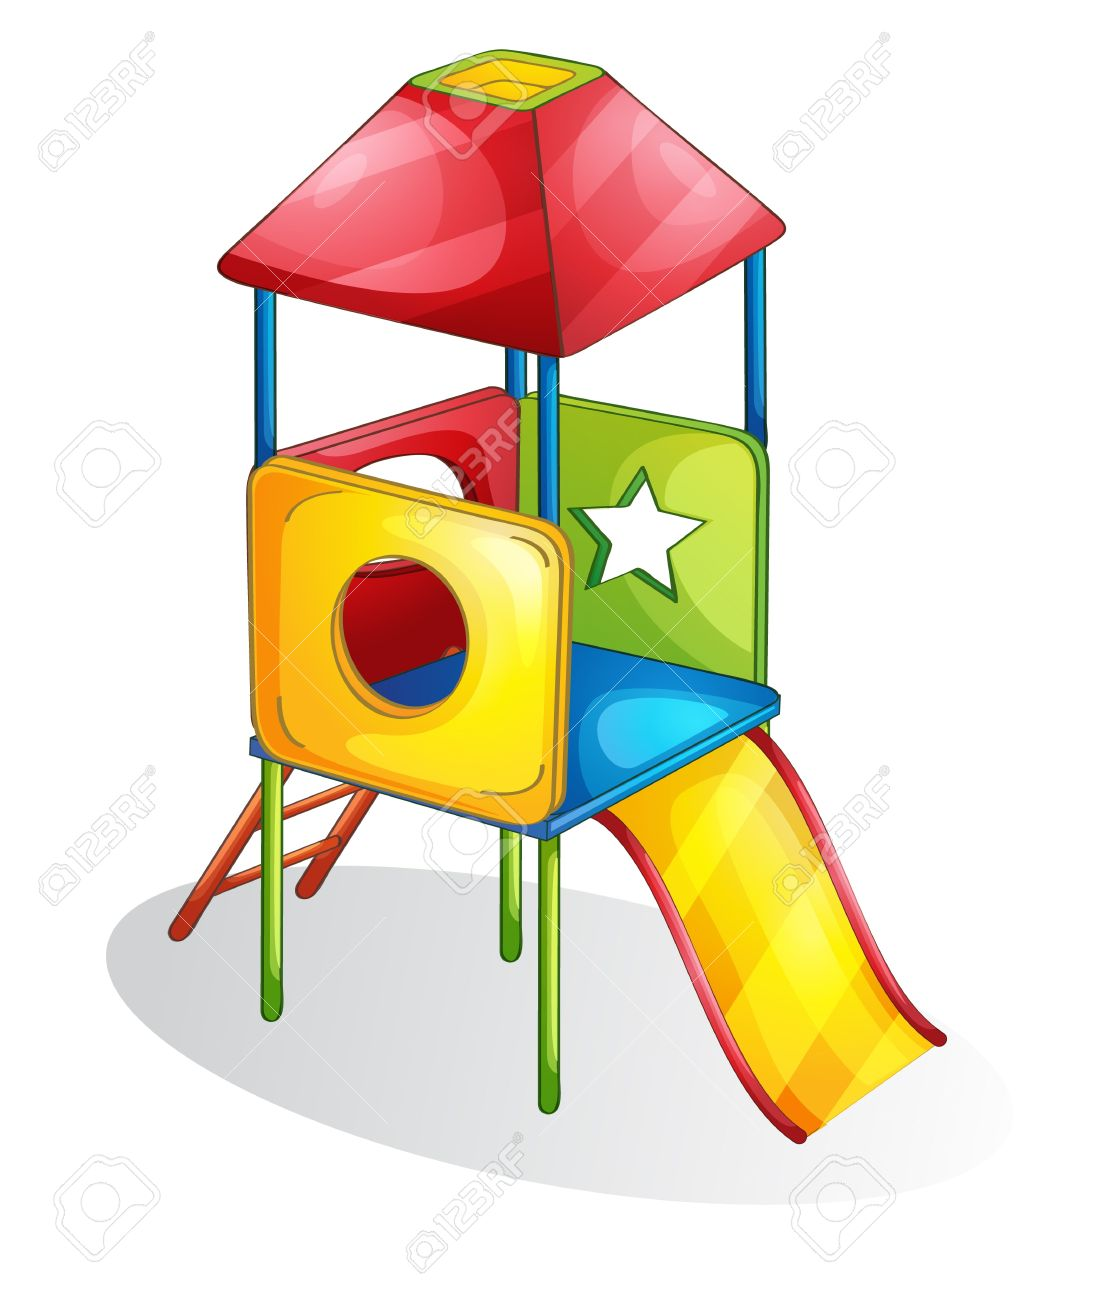 Isolated Play Equipment On White Royalty Free Cliparts, Vectors.